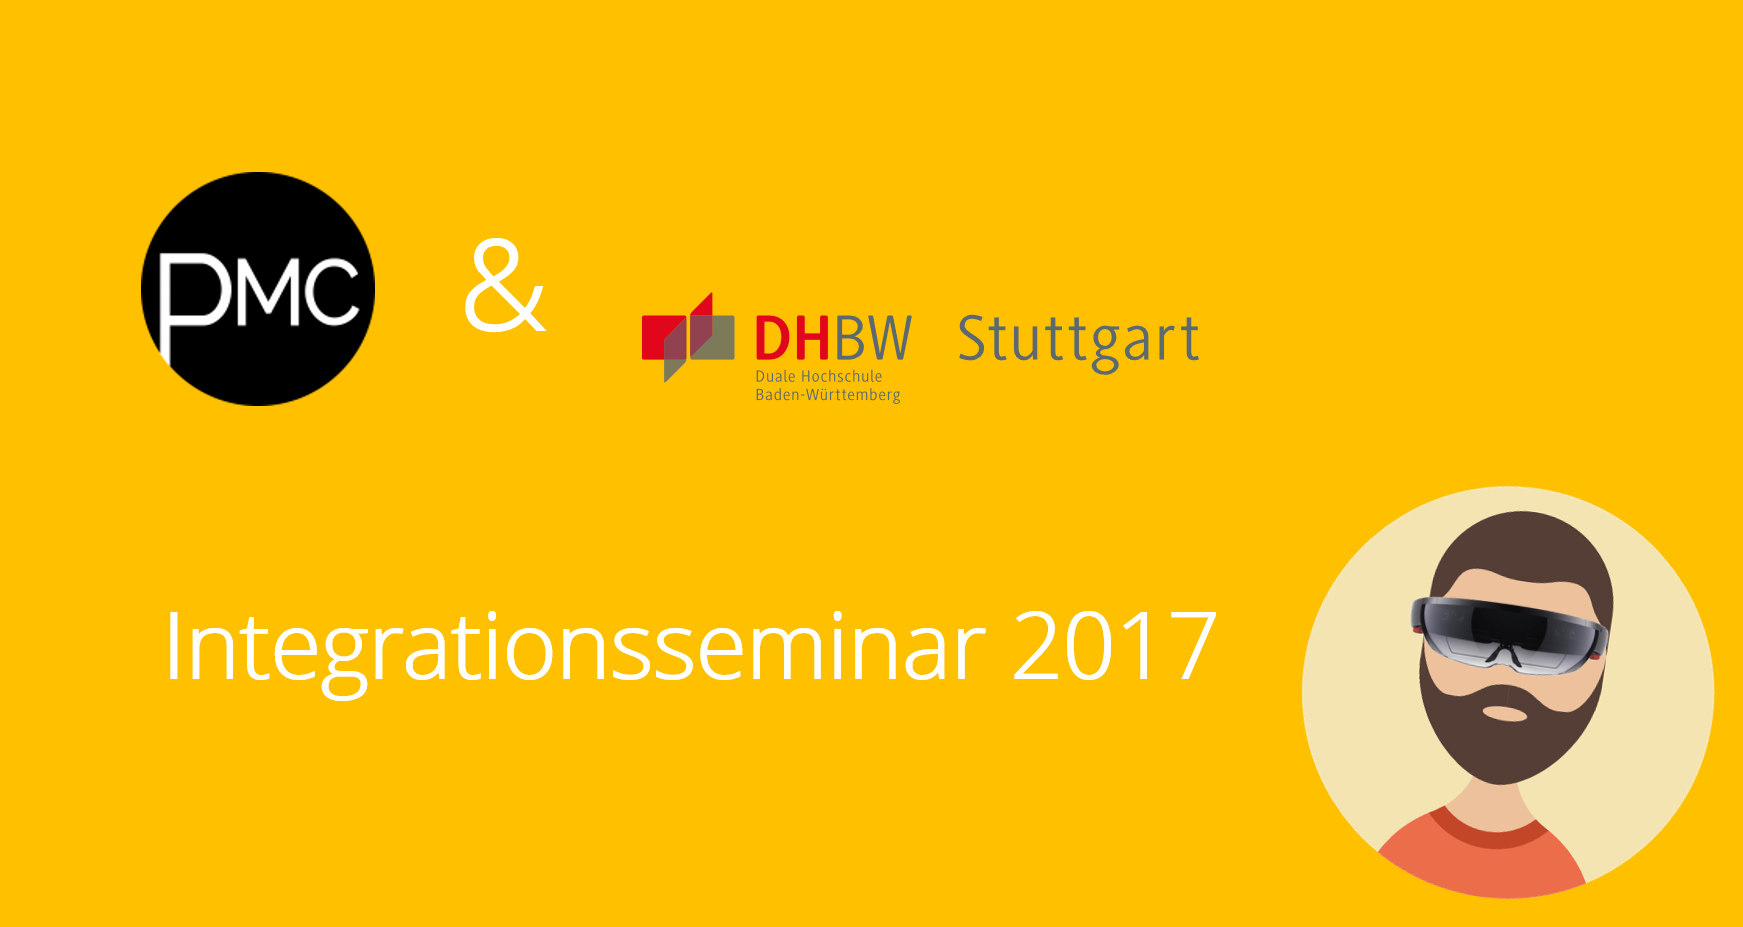 Integrationsseminar 2017